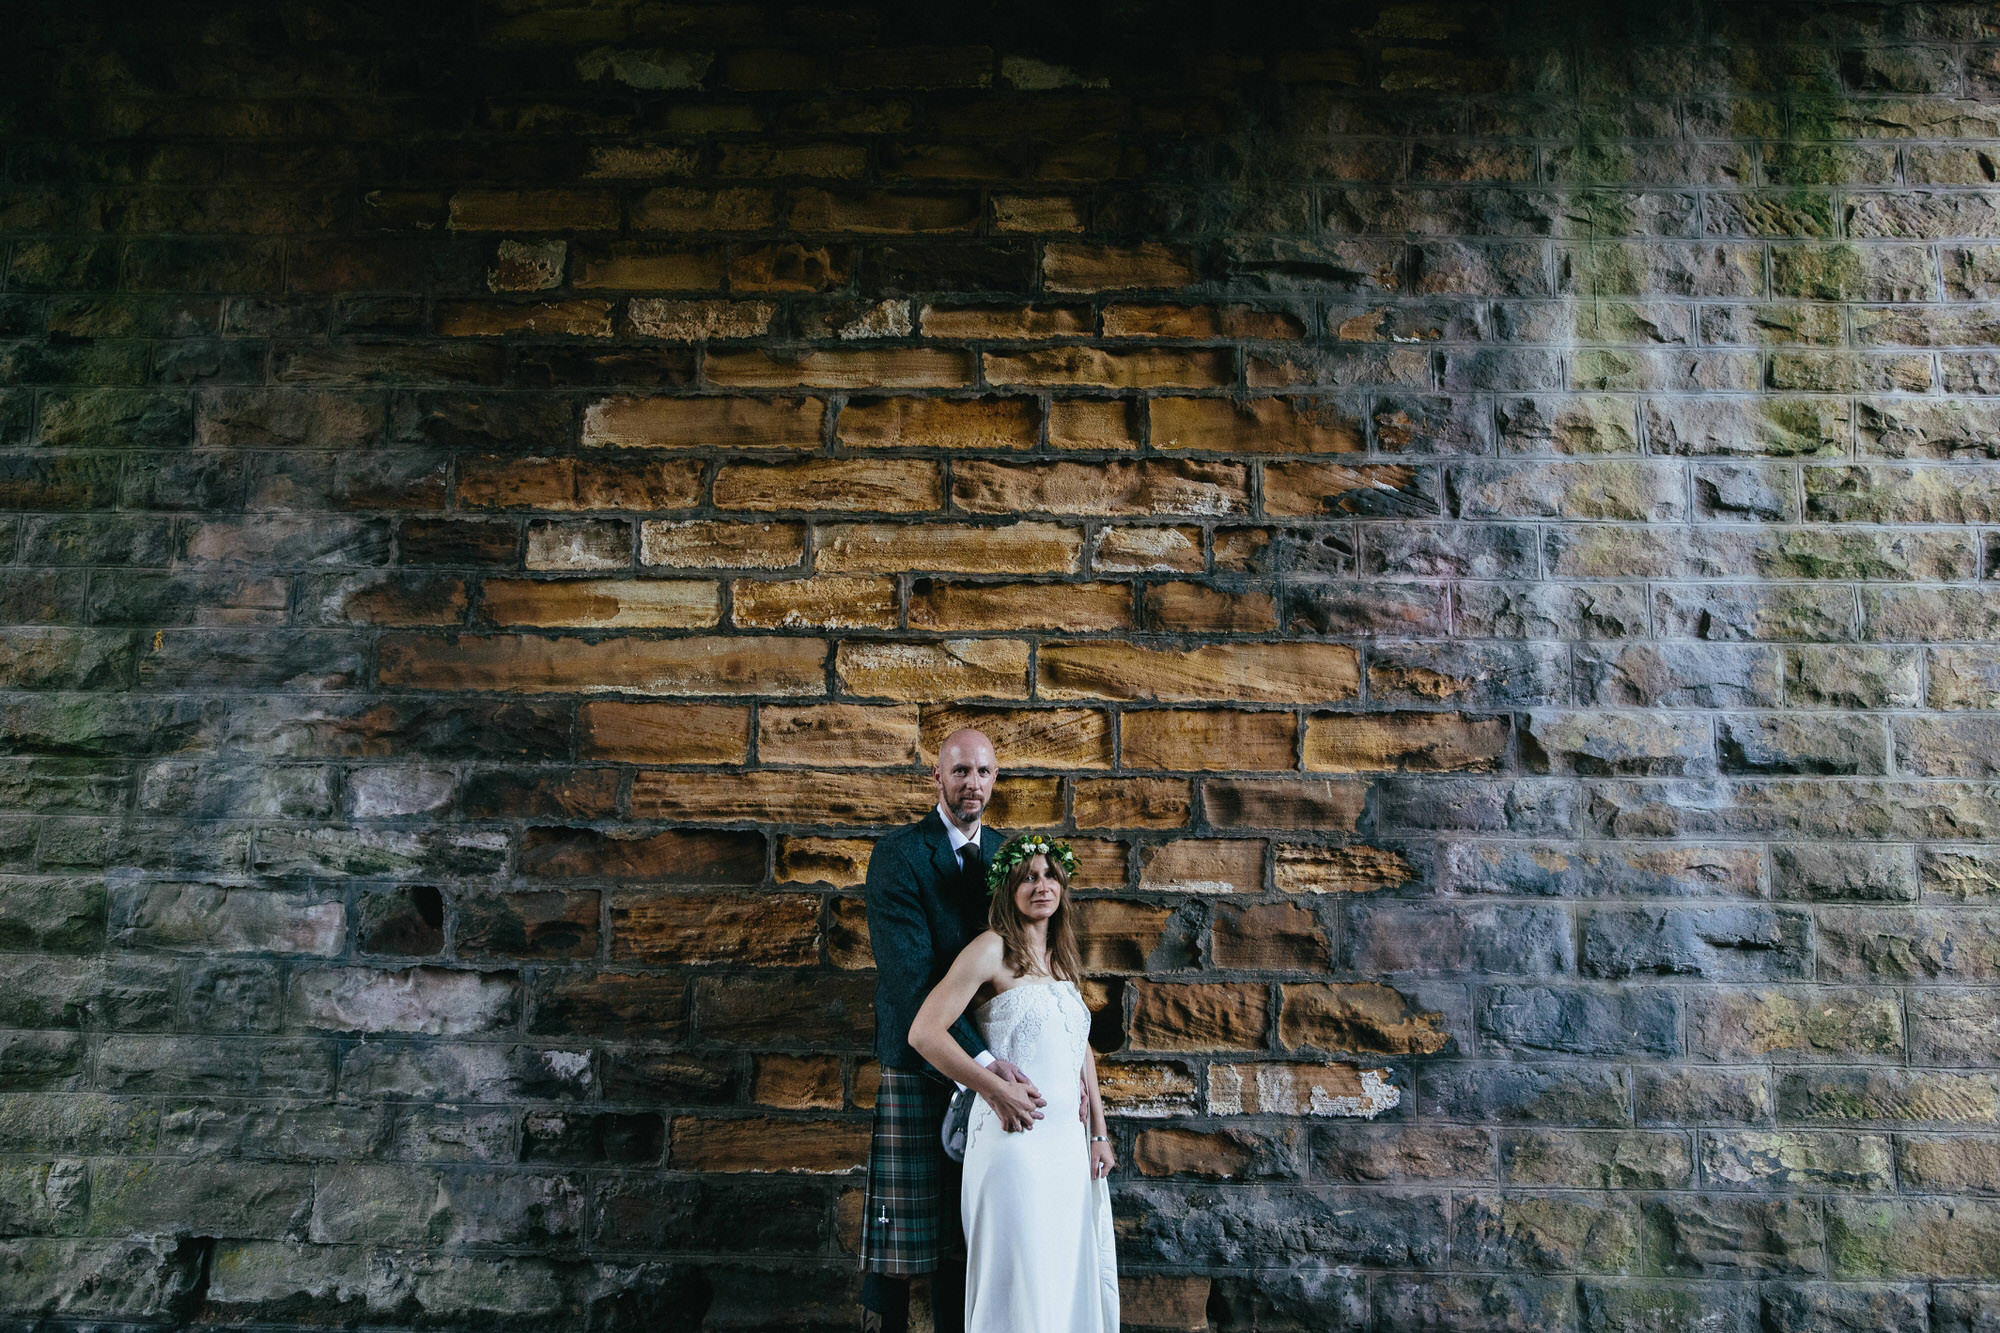 Alternative Natural Quirky Wedding Photographs UK Scotland 129.jpg